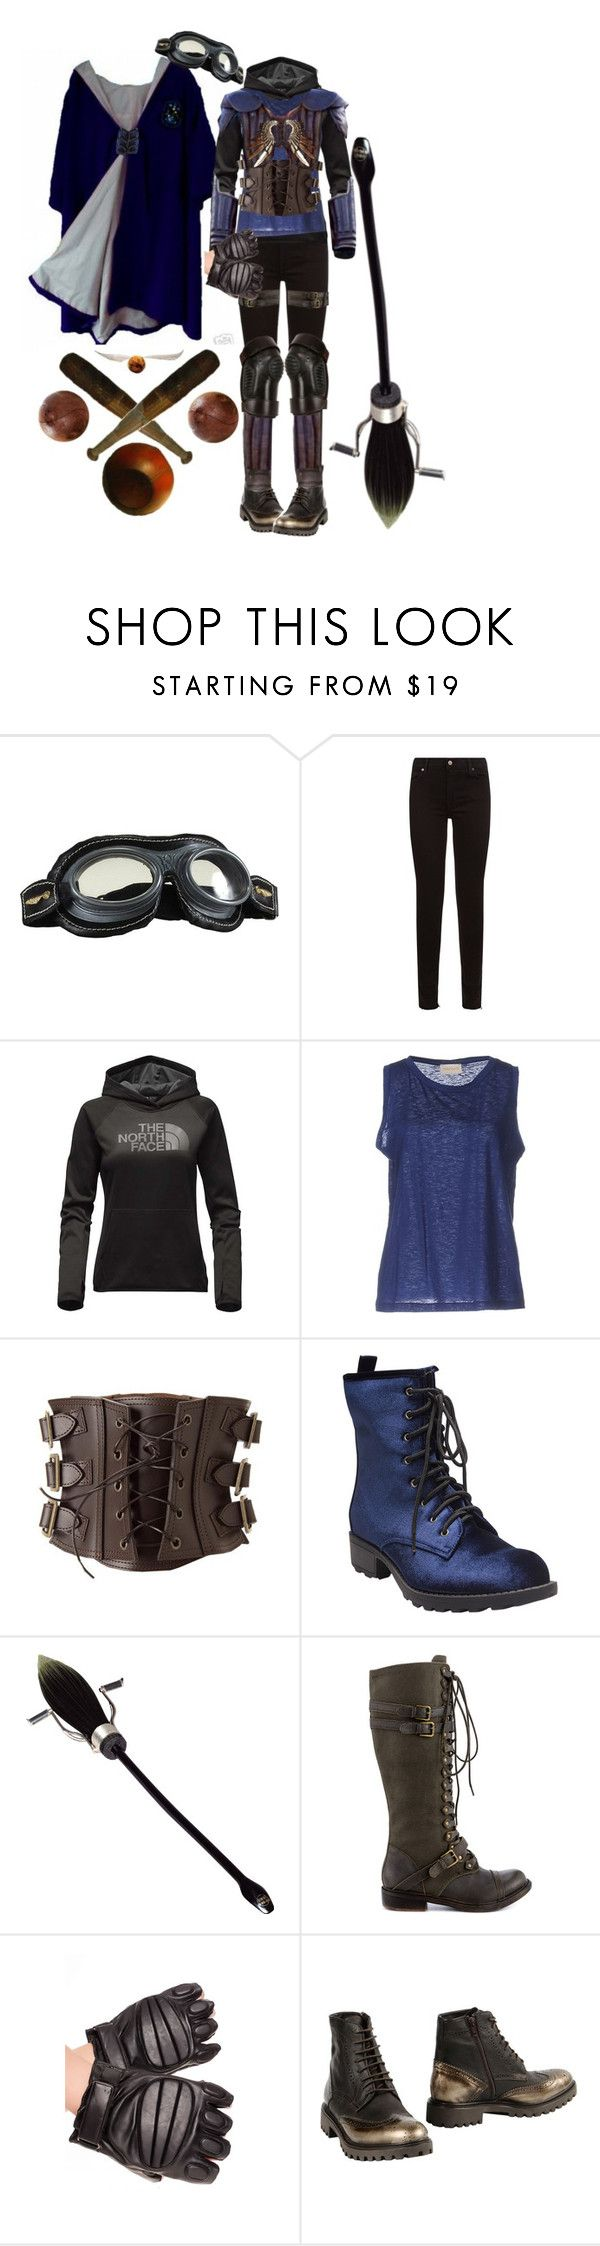 """female Ravenclaw quidditch uniform"" by leopardwolf ❤ liked on Polyvore featuring 7 For All Mankind, The North Face, Momonì, Wet Seal, Nimbus, ZIGIgirl, Carlo Pazolini, LA MARTINA, harrypotter and hogwarts"